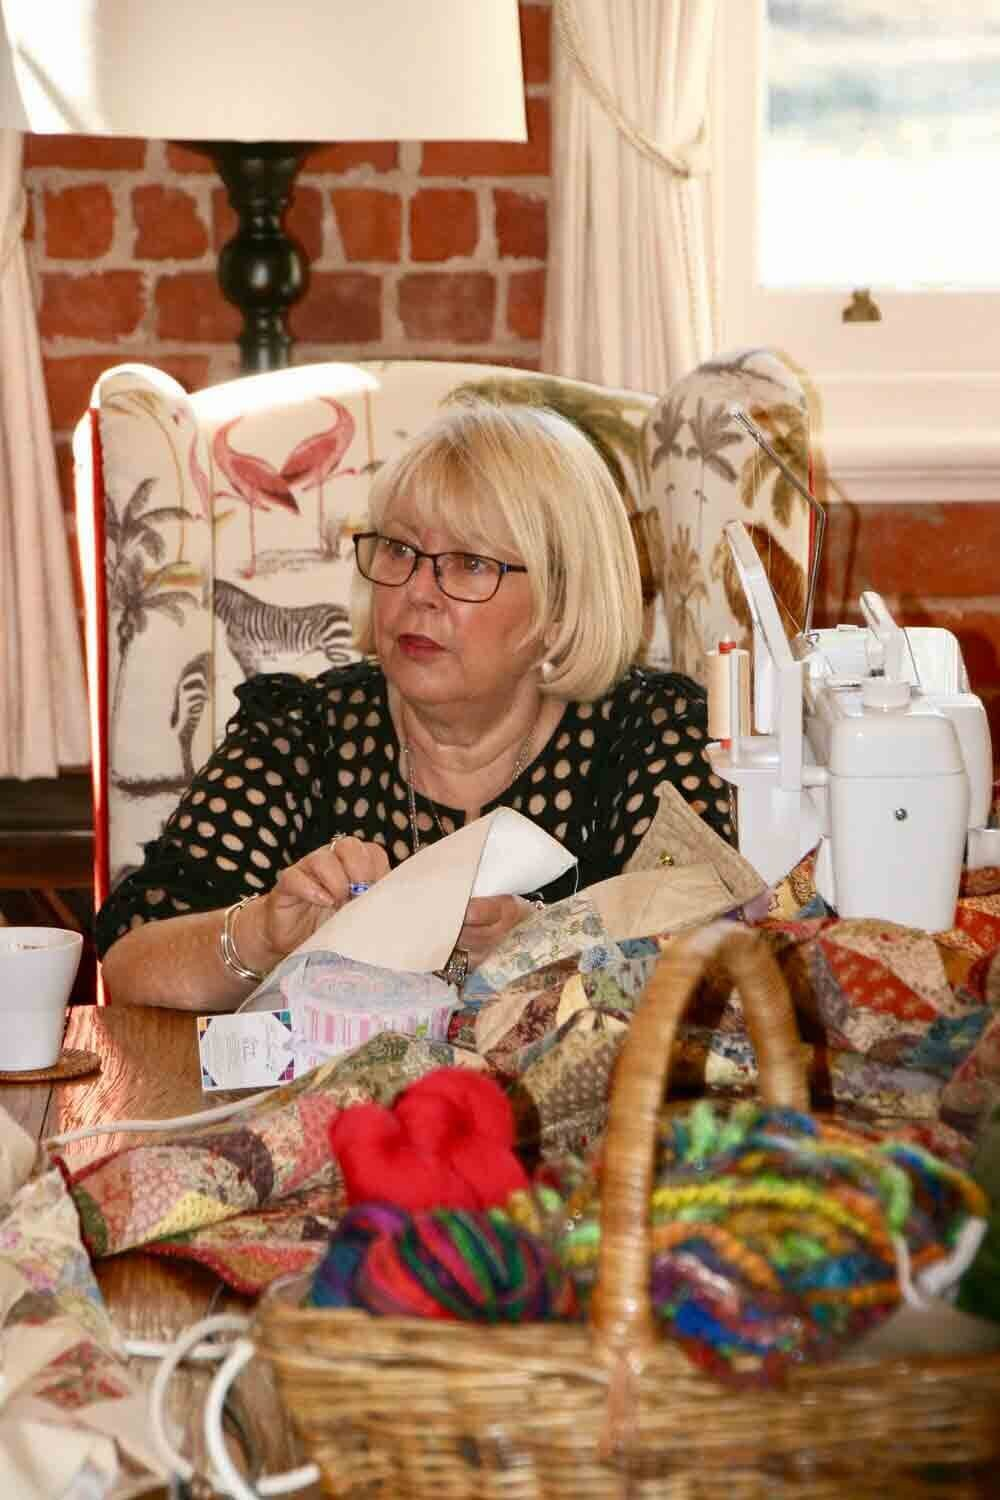 Hand sewing at The Eaglehawk Quilting Retreat